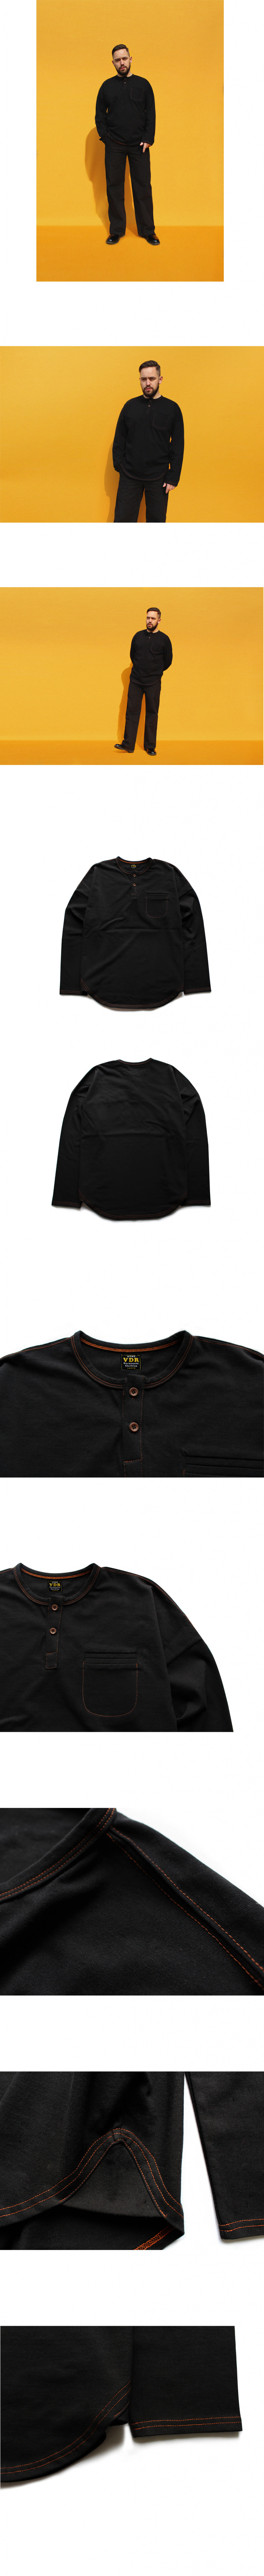 비디알(VDR) 12s ARCHER T-SHIRT [Black]